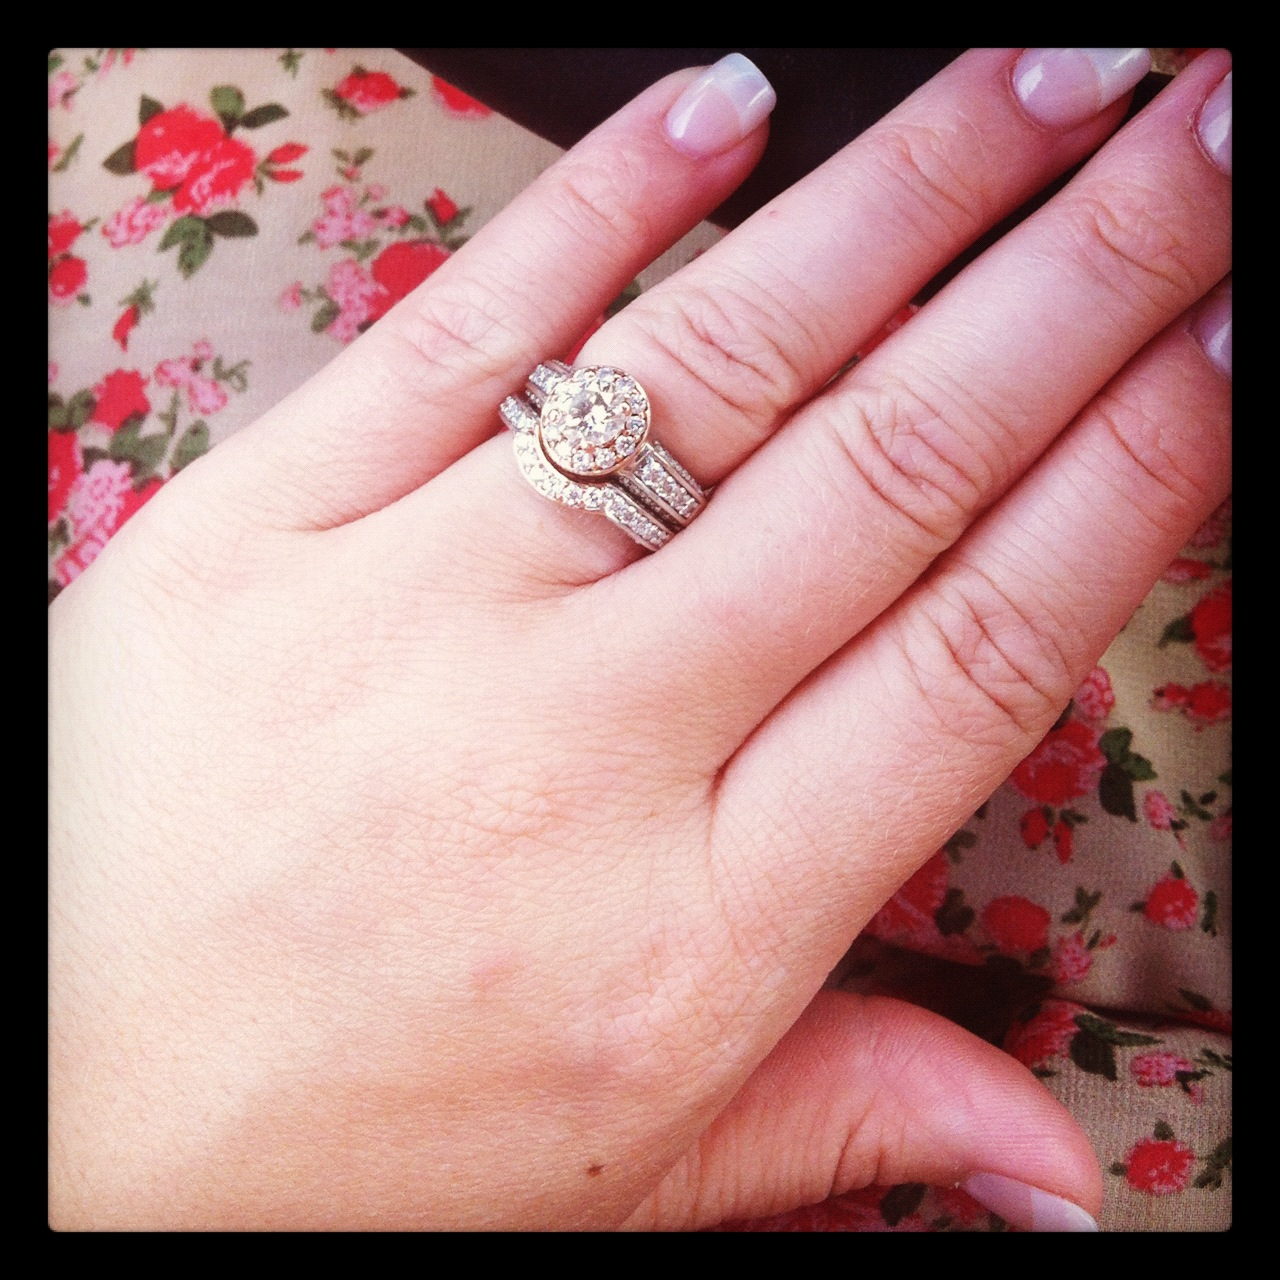 engagement ring Archives - The Vintage Modern Wife